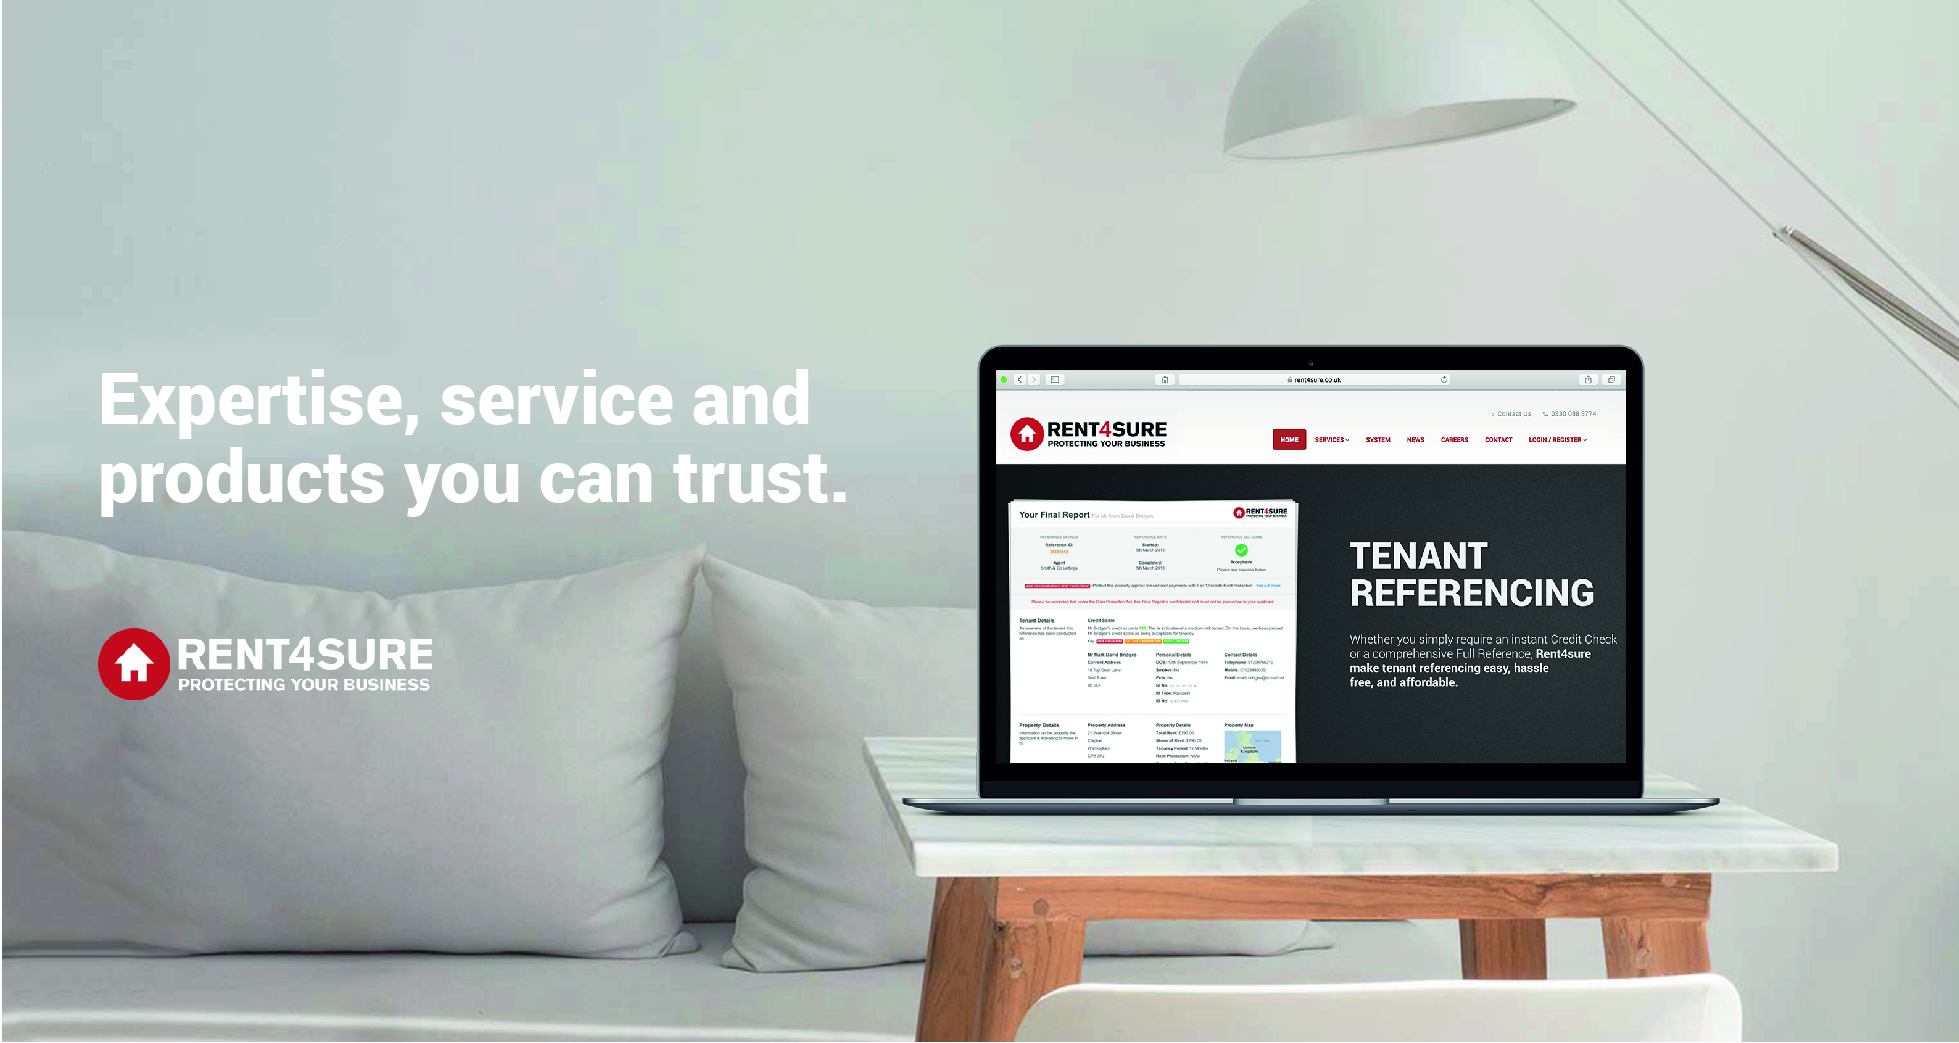 Quality referencing from Rent4sure - expertise, service and products you can trust.